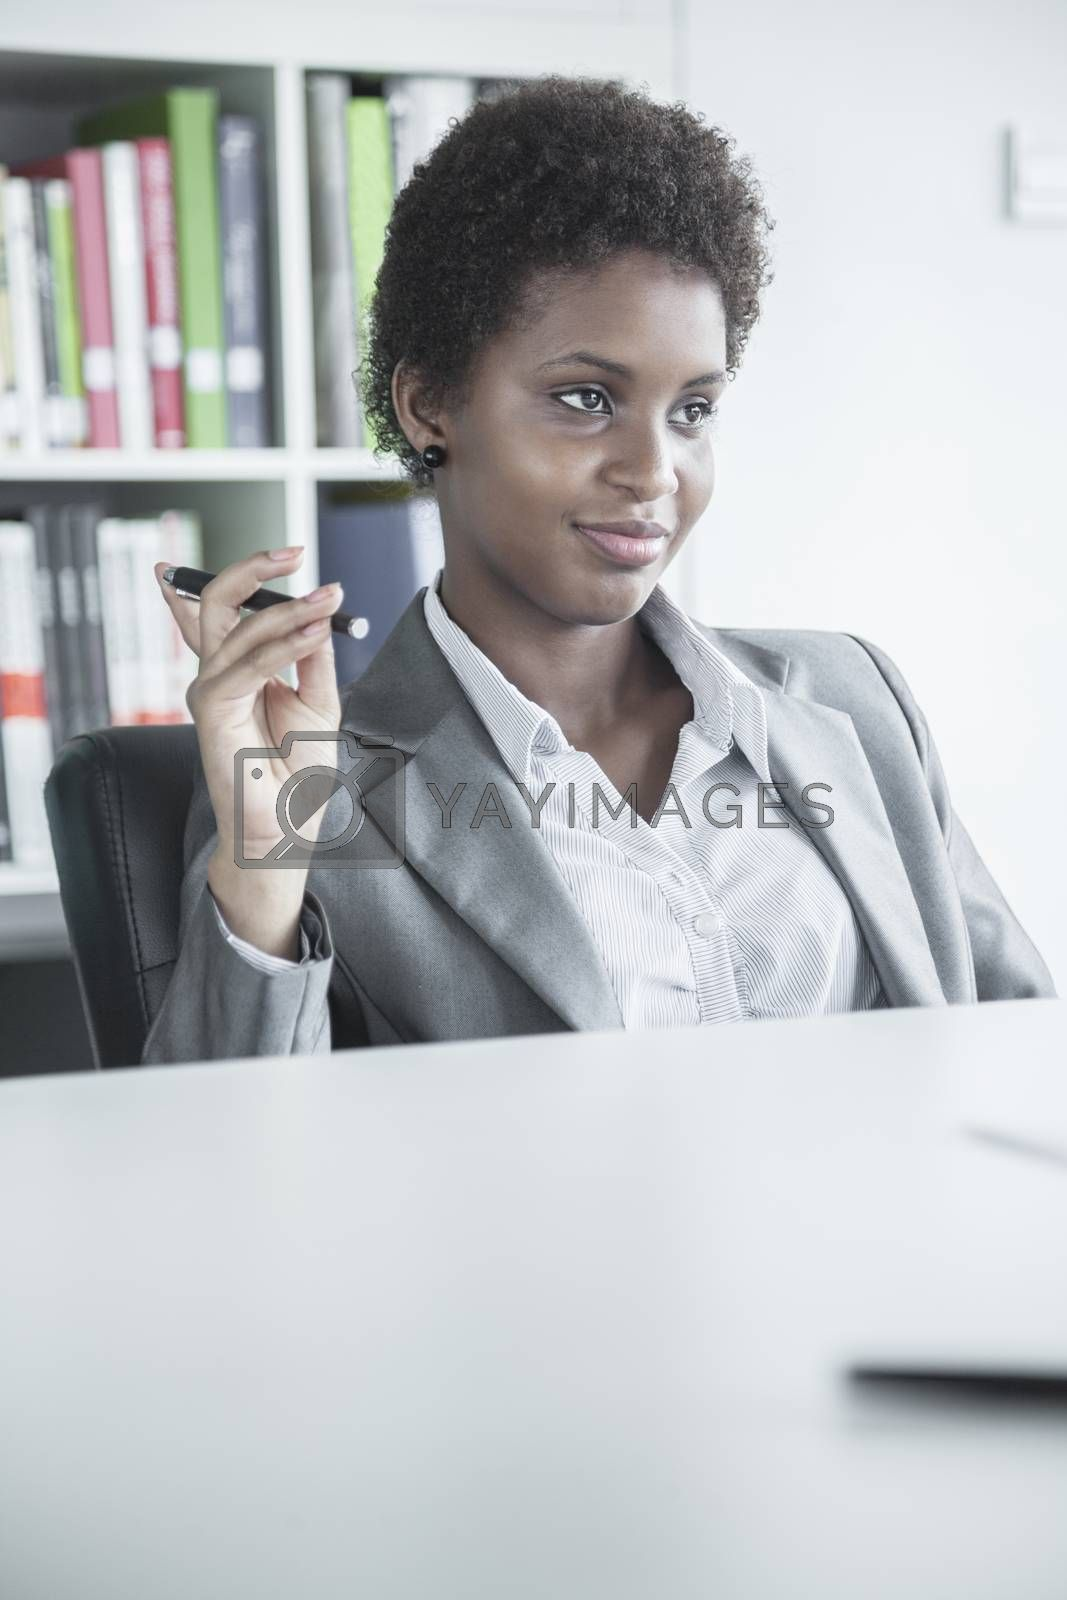 Portrait of young smiling businesswoman sitting at a table and holding a pen